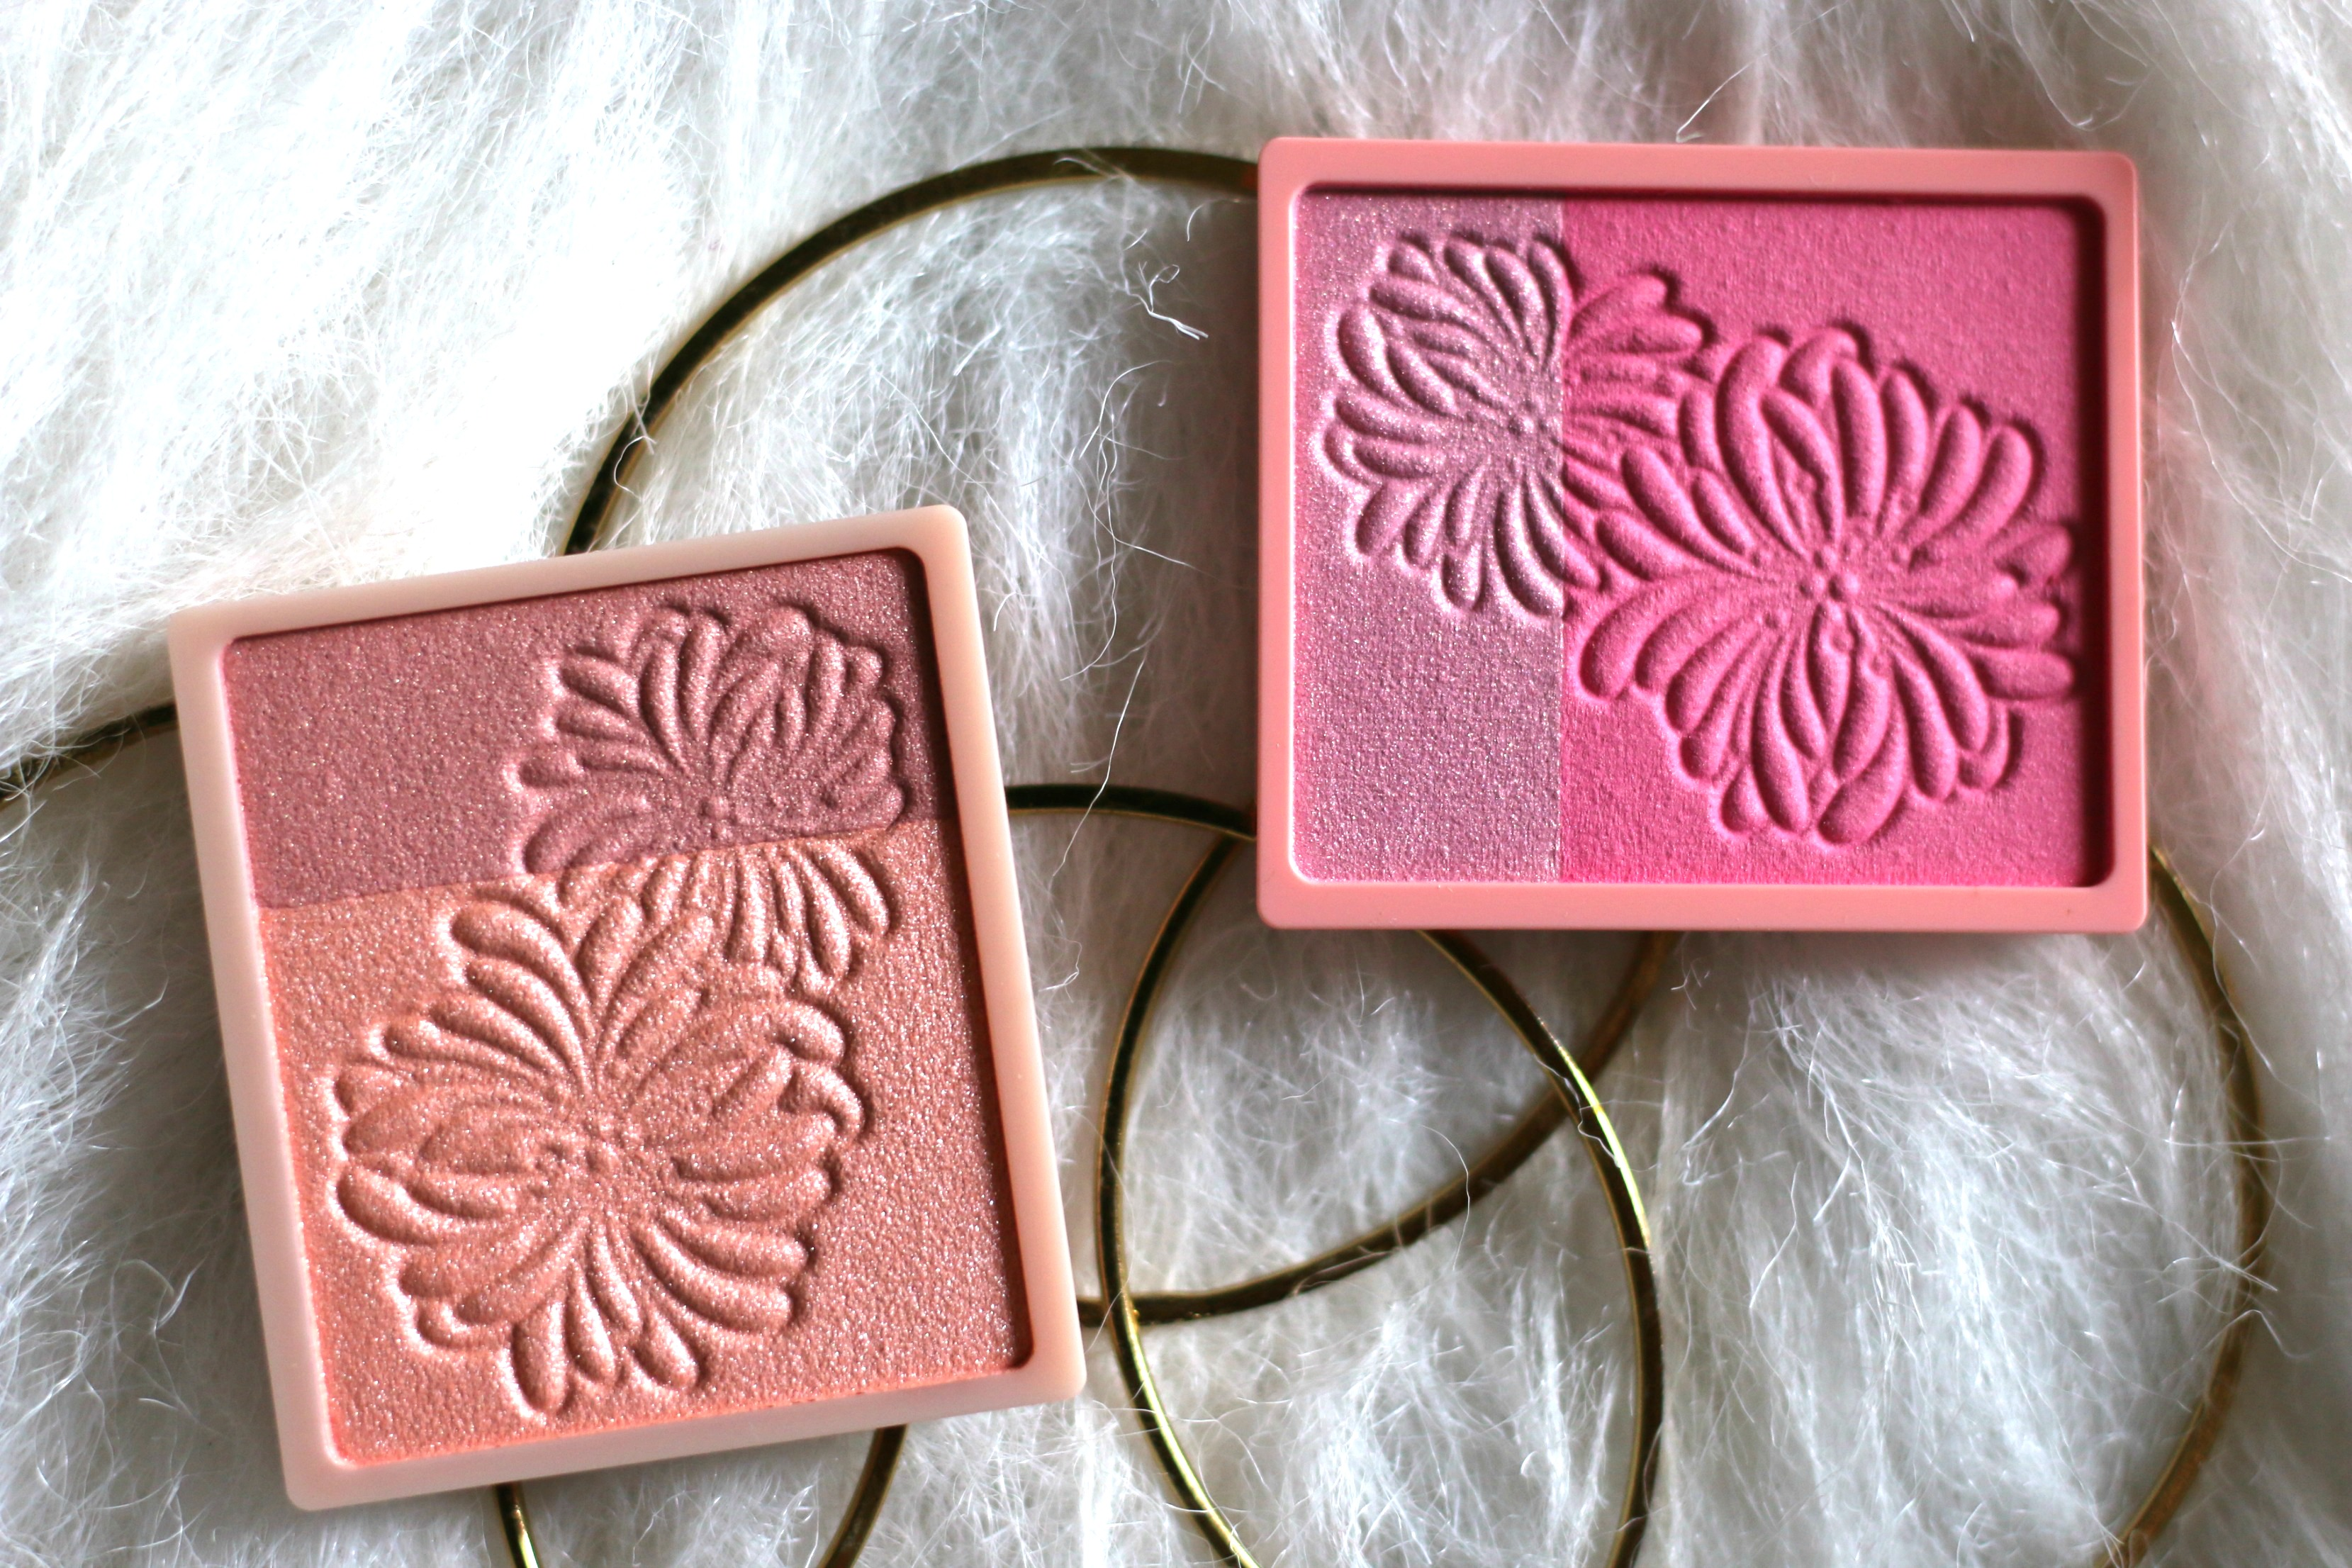 Paul & Joe Limited Edition Powder Blush Refill (02 & 004) & Compact | Spring 2017 Collection